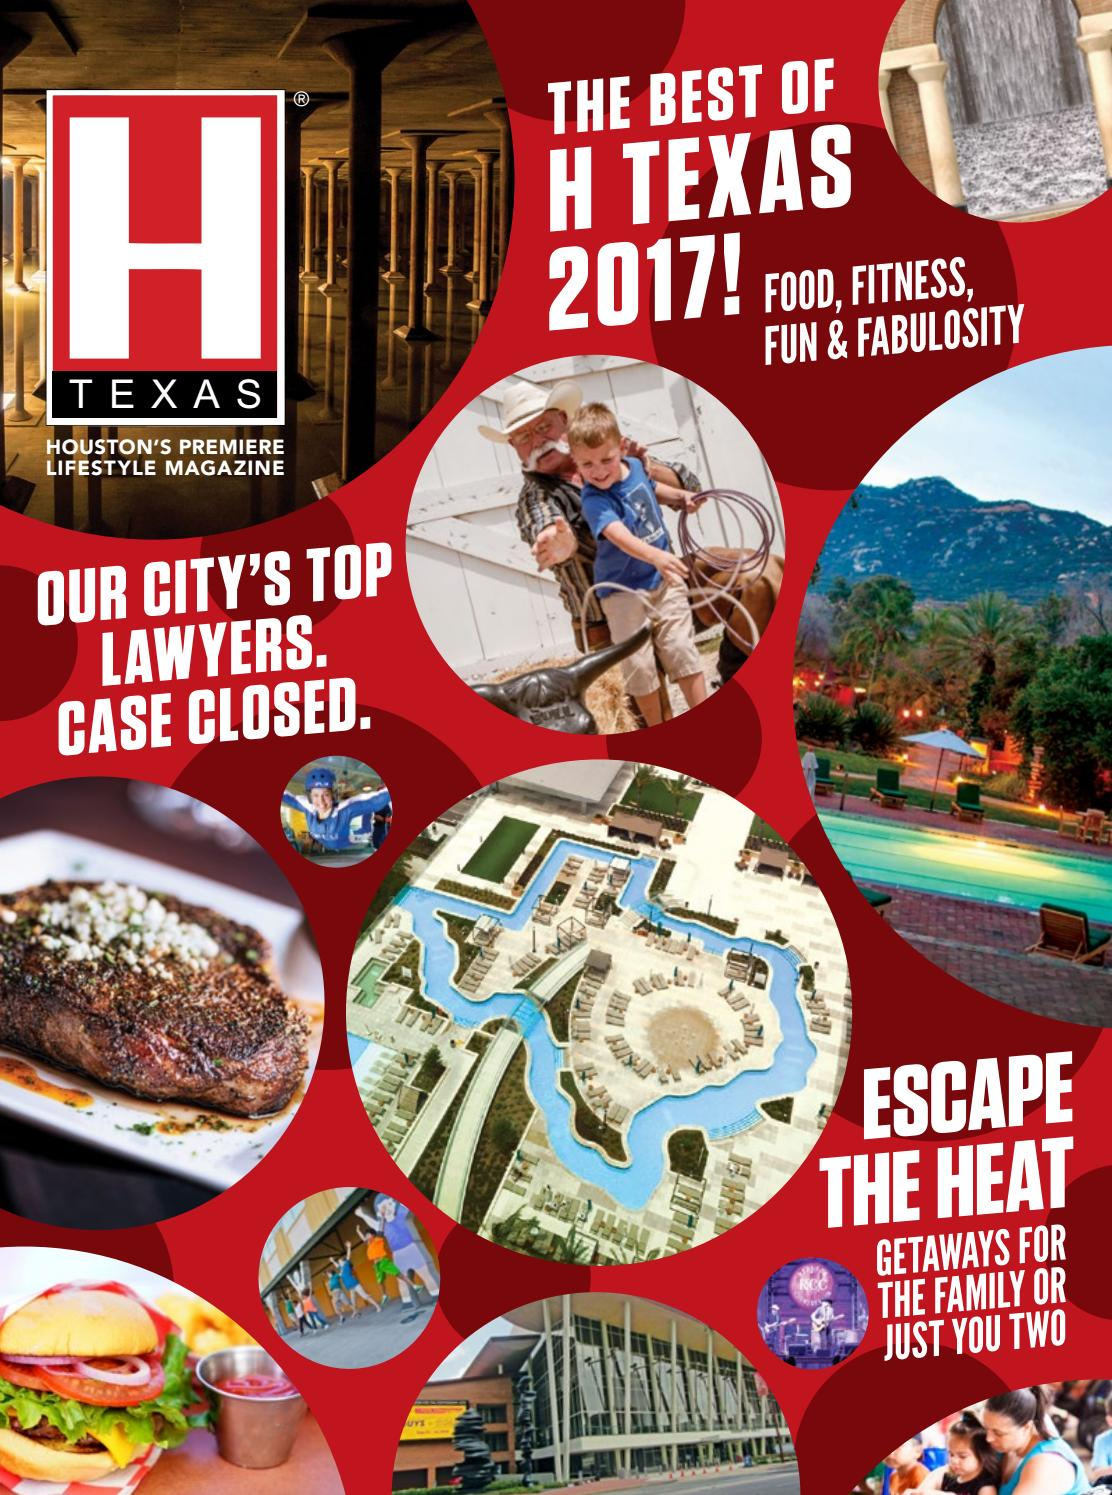 H Texas Magazine - Top Lawyers 2017 by Bridal Extravaganza